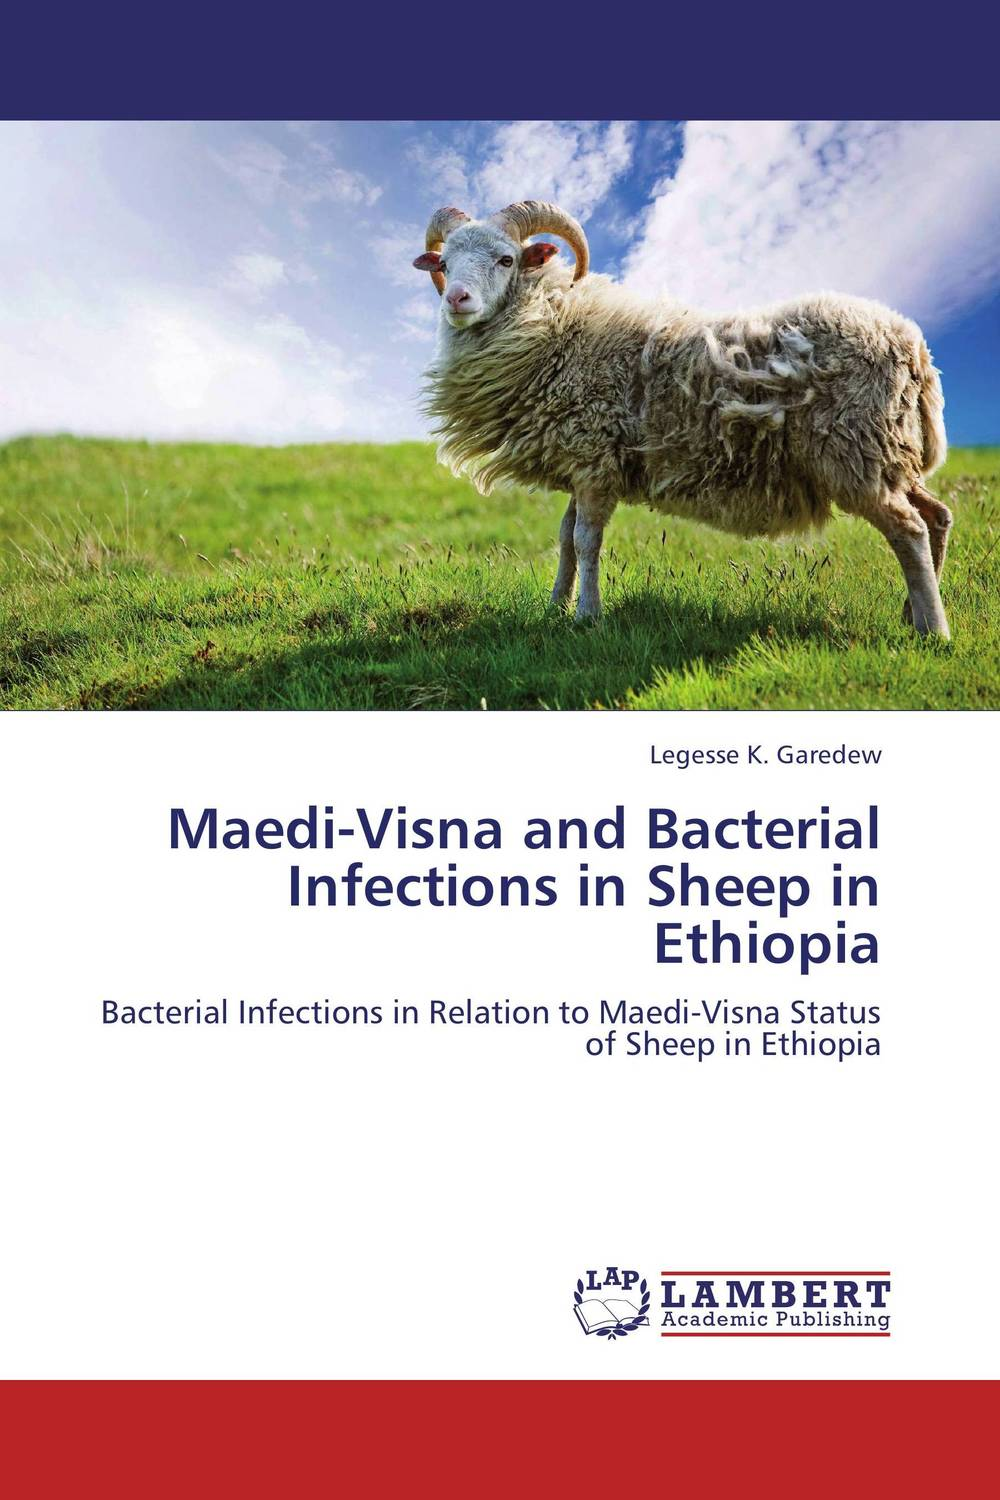 Maedi-Visna and Bacterial Infections in Sheep in Ethiopia tapan kumar dutta and parimal roychoudhury diagnosis and characterization of bacterial pathogens in animal